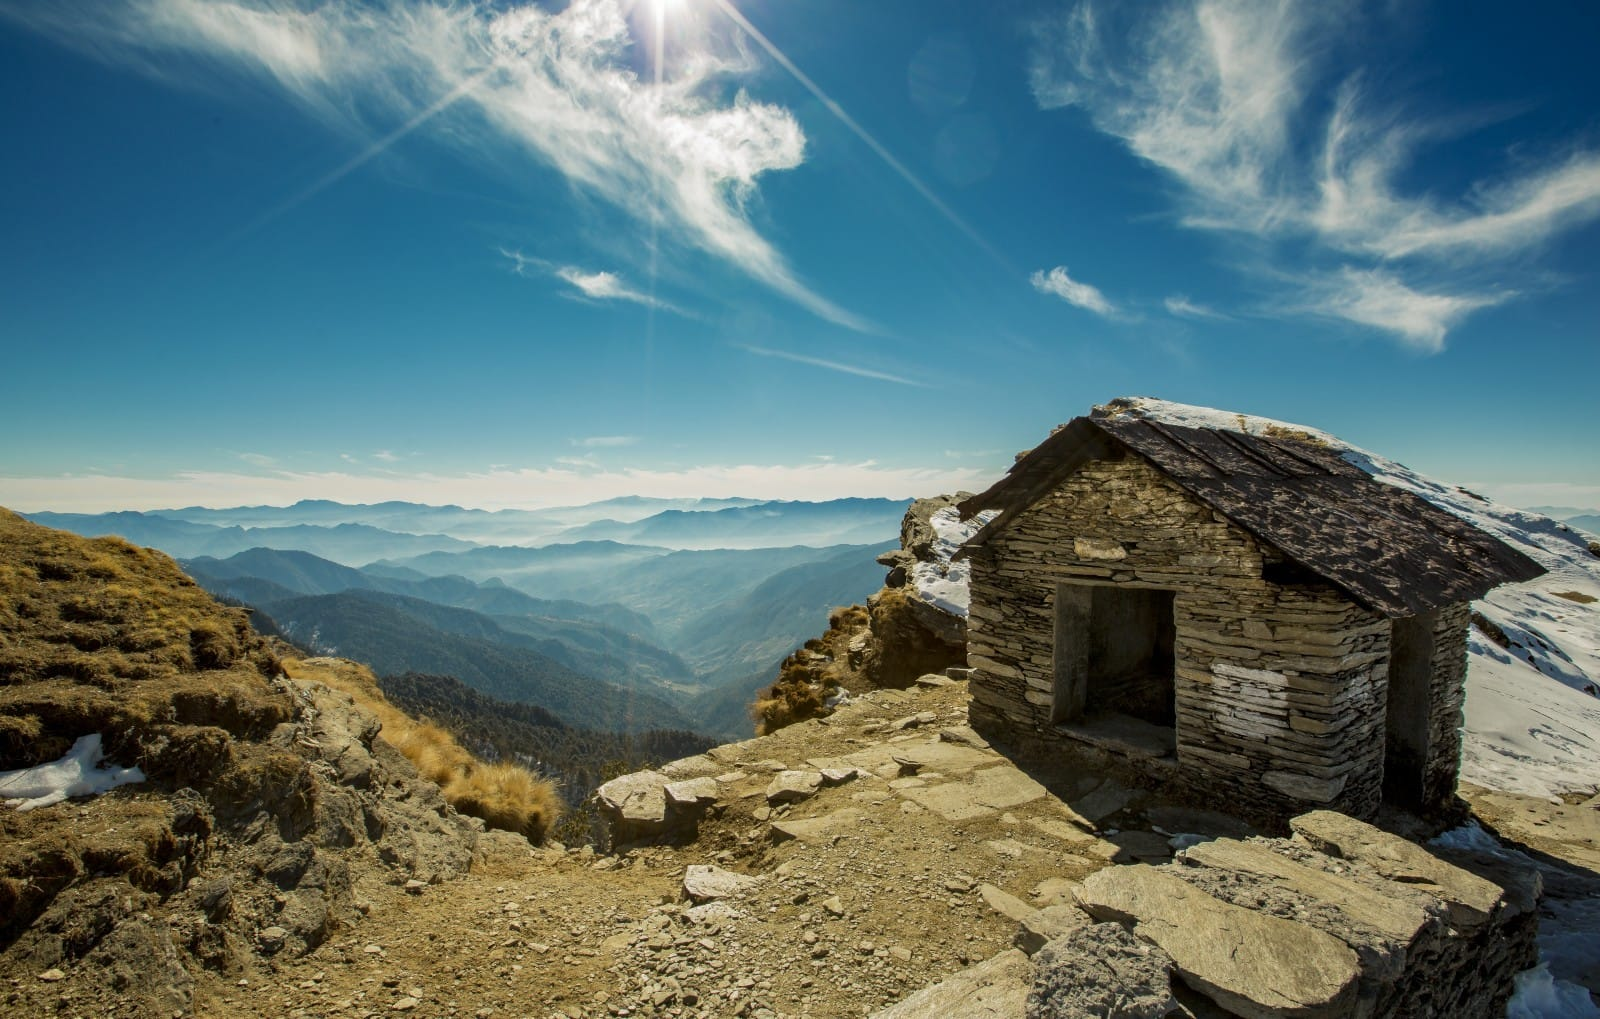 stone-hill-mountain-huts-sky